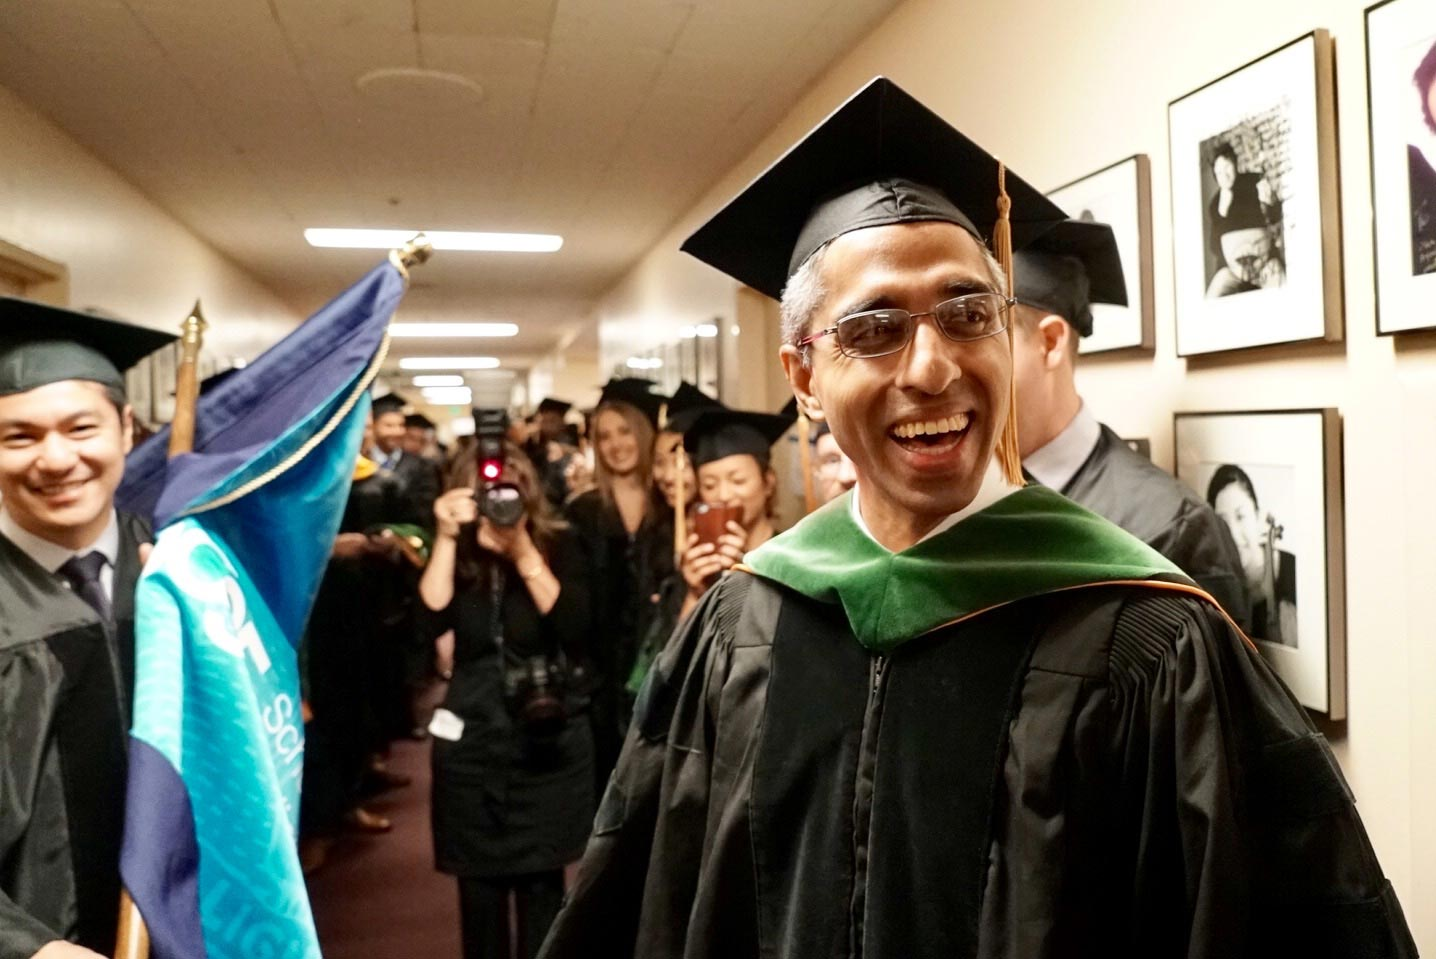 Vivek Murthy smiles while dressed in his graduation cap and gown.